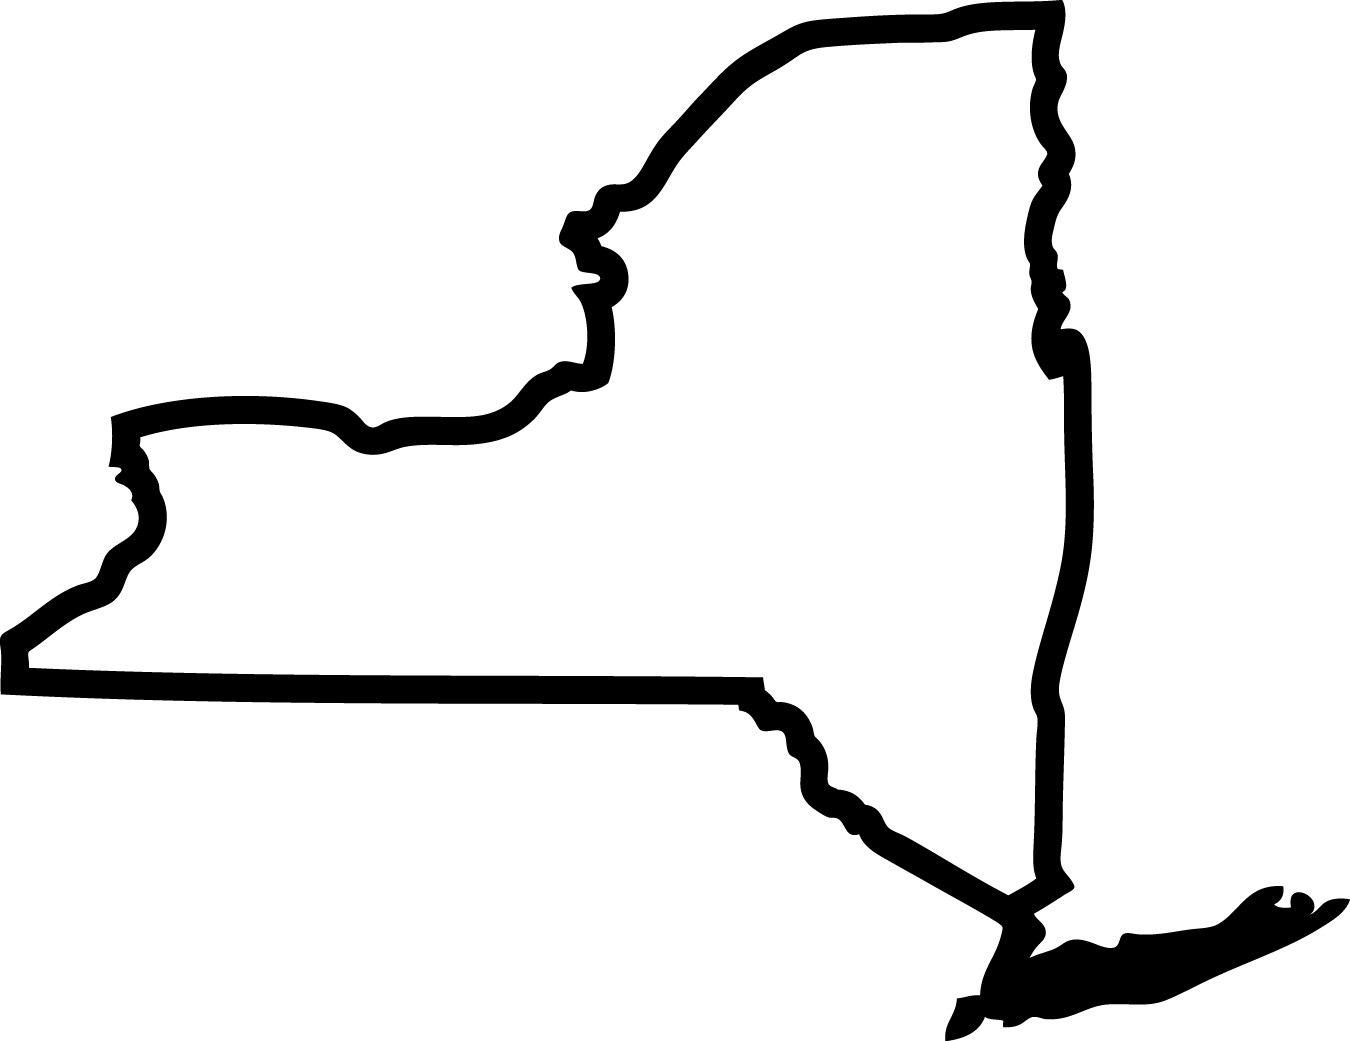 New York State Outline (NY8) [NY8] - $4.99 : Eyecandy Decals ...